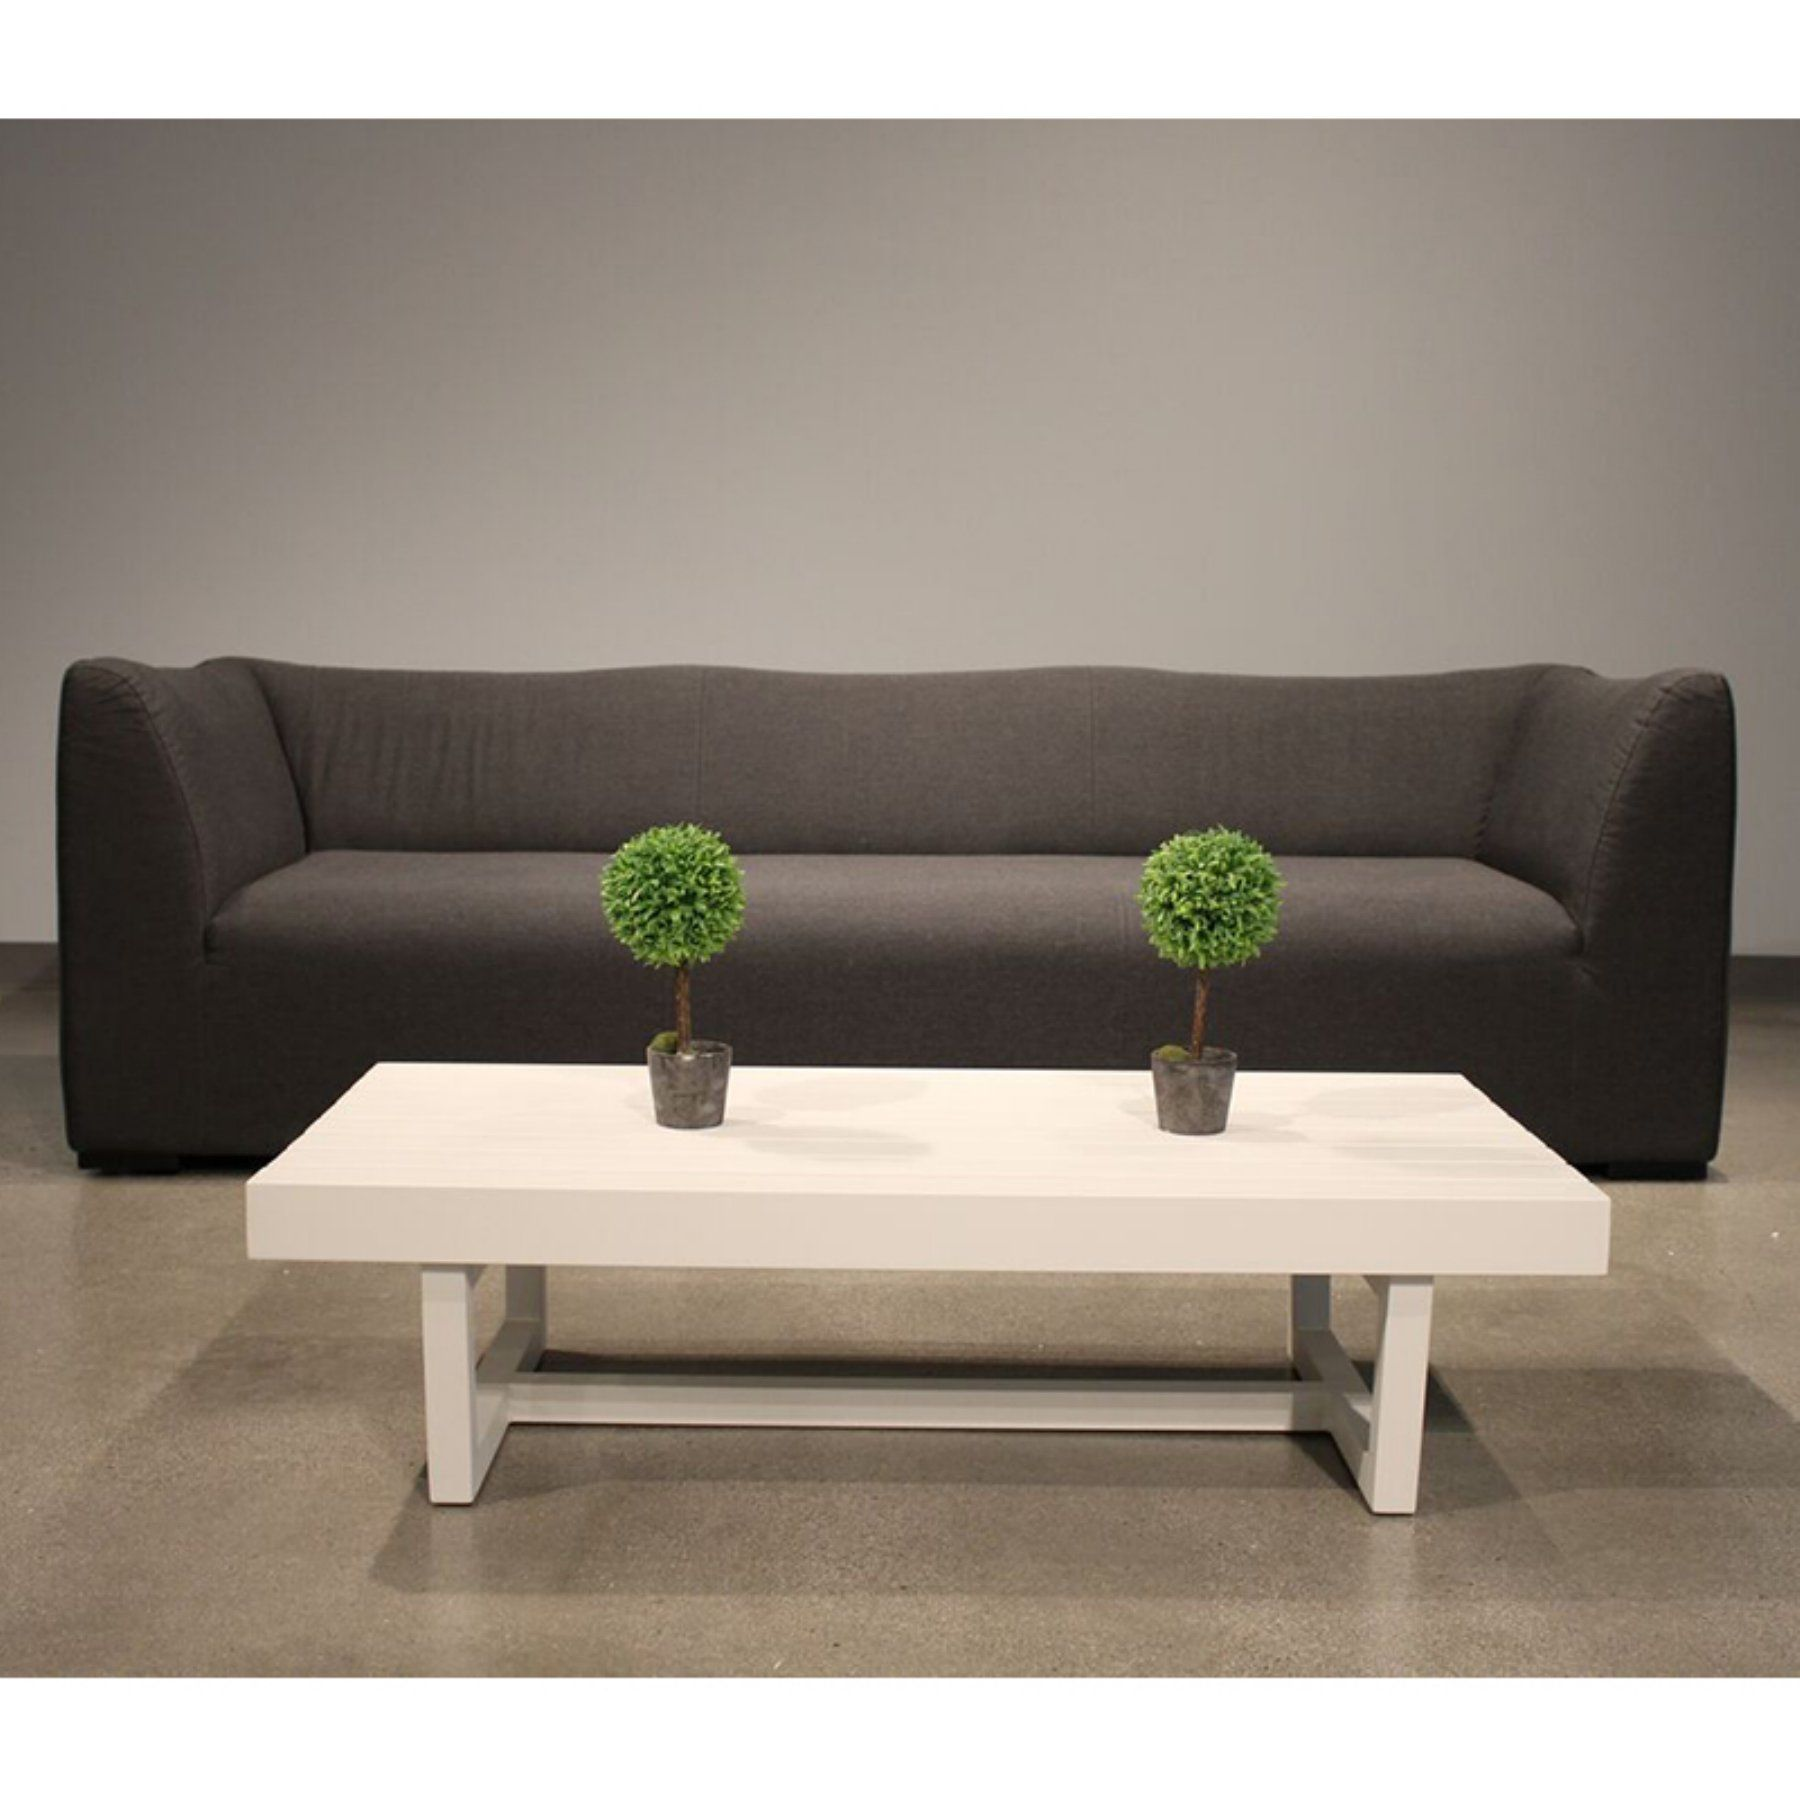 Whiteline Harmony Outdoor Sofa  So1575 Dcha